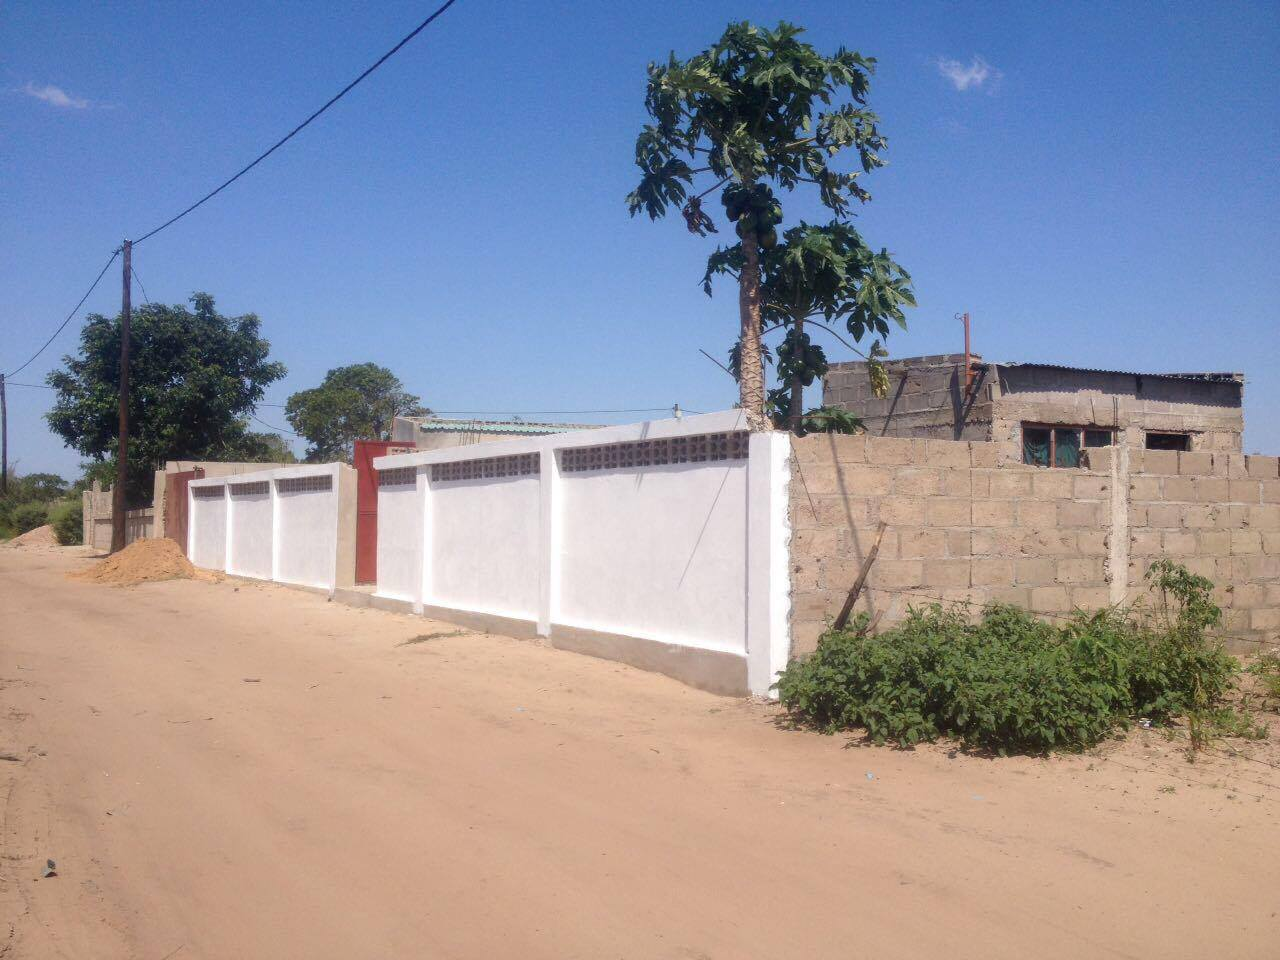 Some of the latest addition to the construction, the entrance: behind awaits what is to become a safe playground for children and an inspiring place for the people of Matola